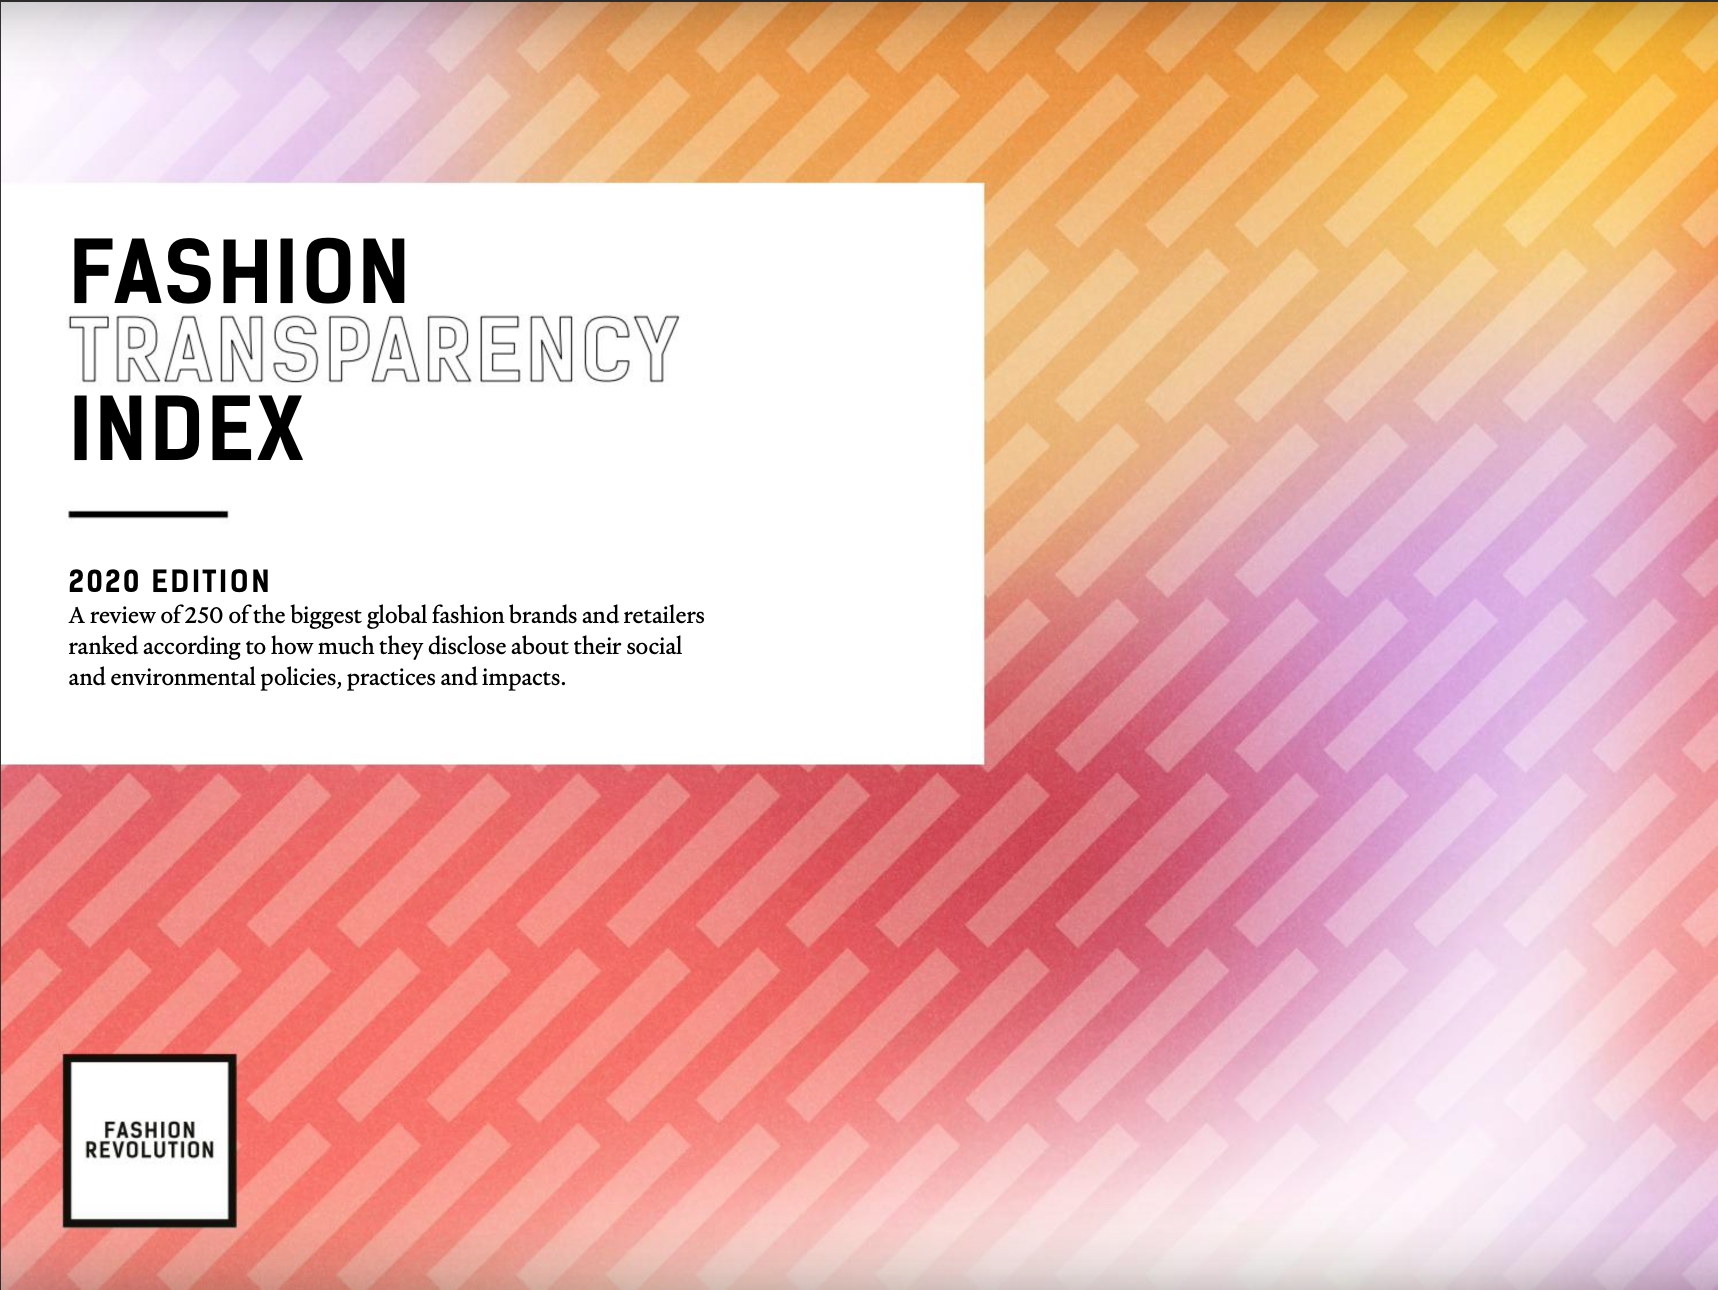 Fashion Revolution Transparency Index 20